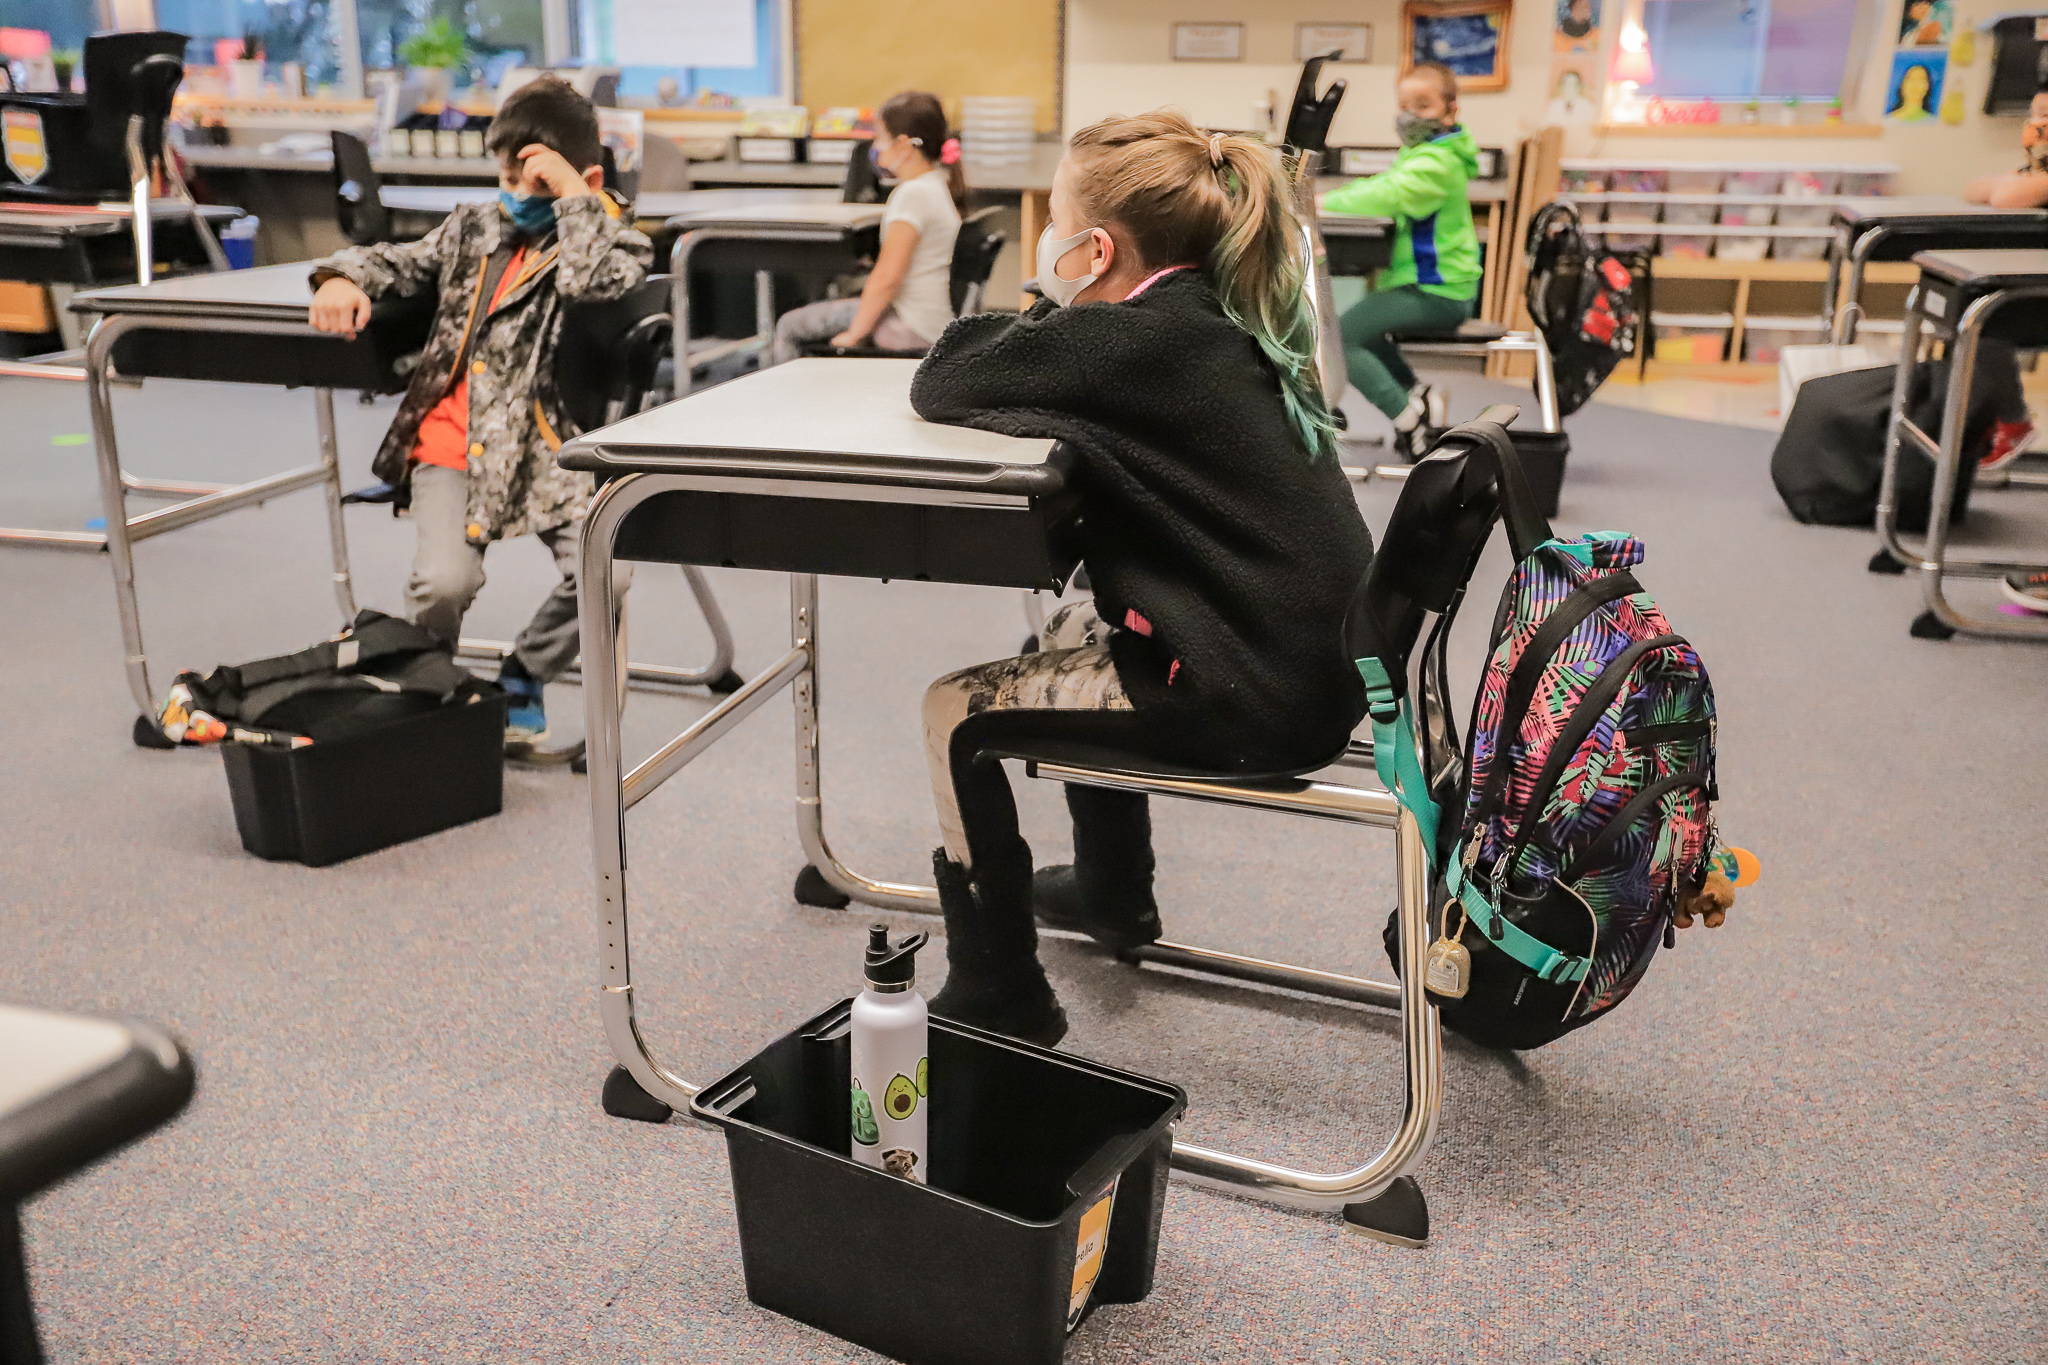 Students sitting at school desks.